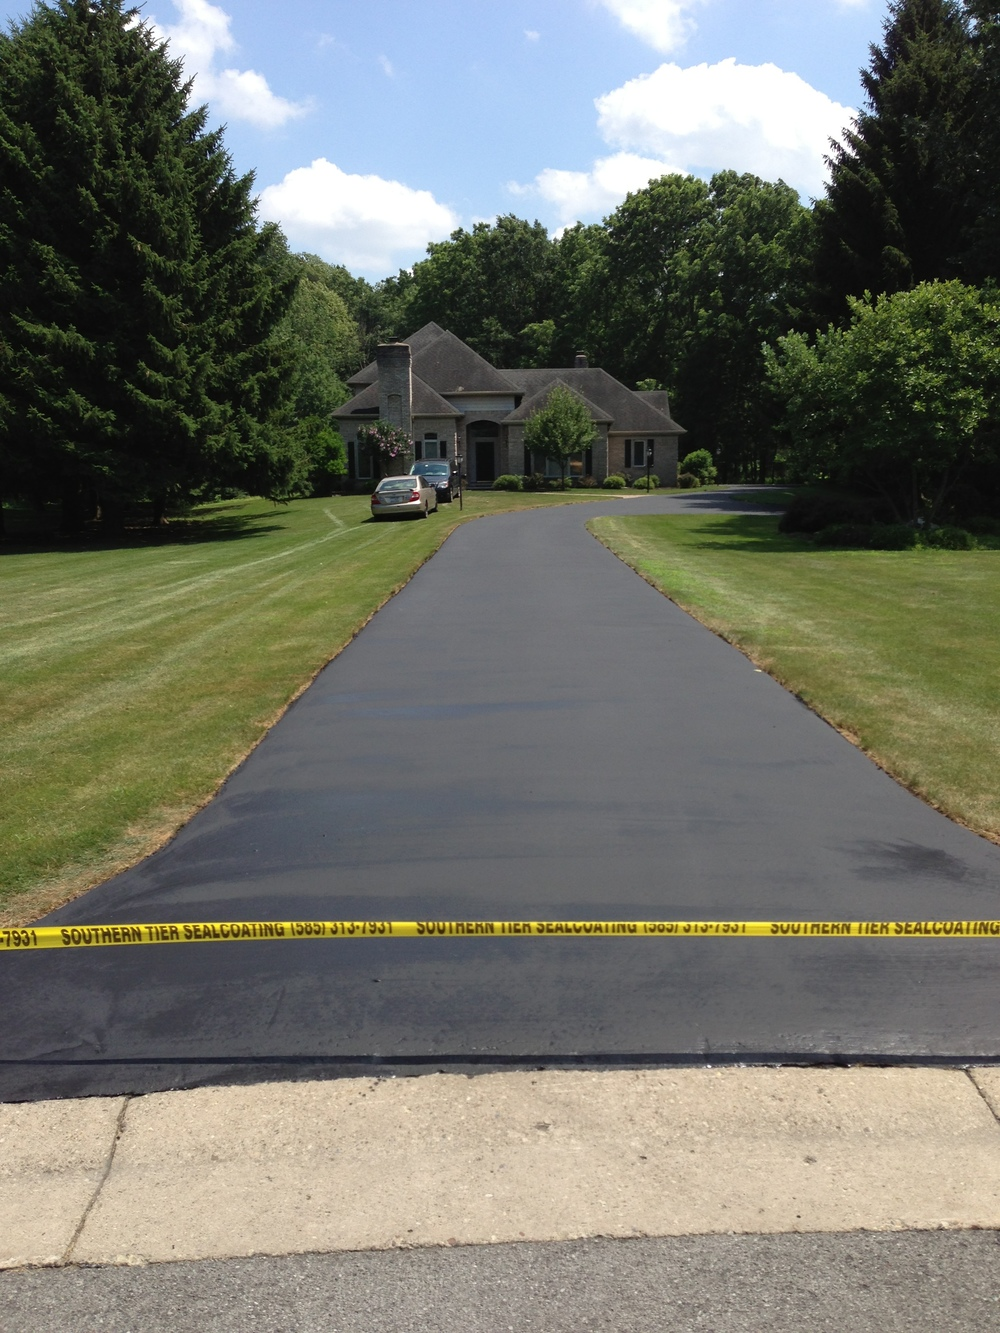 Southern Tier Sealcoating provides Commercial and Residential customers with eco-friendly asphalt sealing services in Rochester, NY. We provide crack repairs, asphalt repair, power blowing, sweeping and edging.